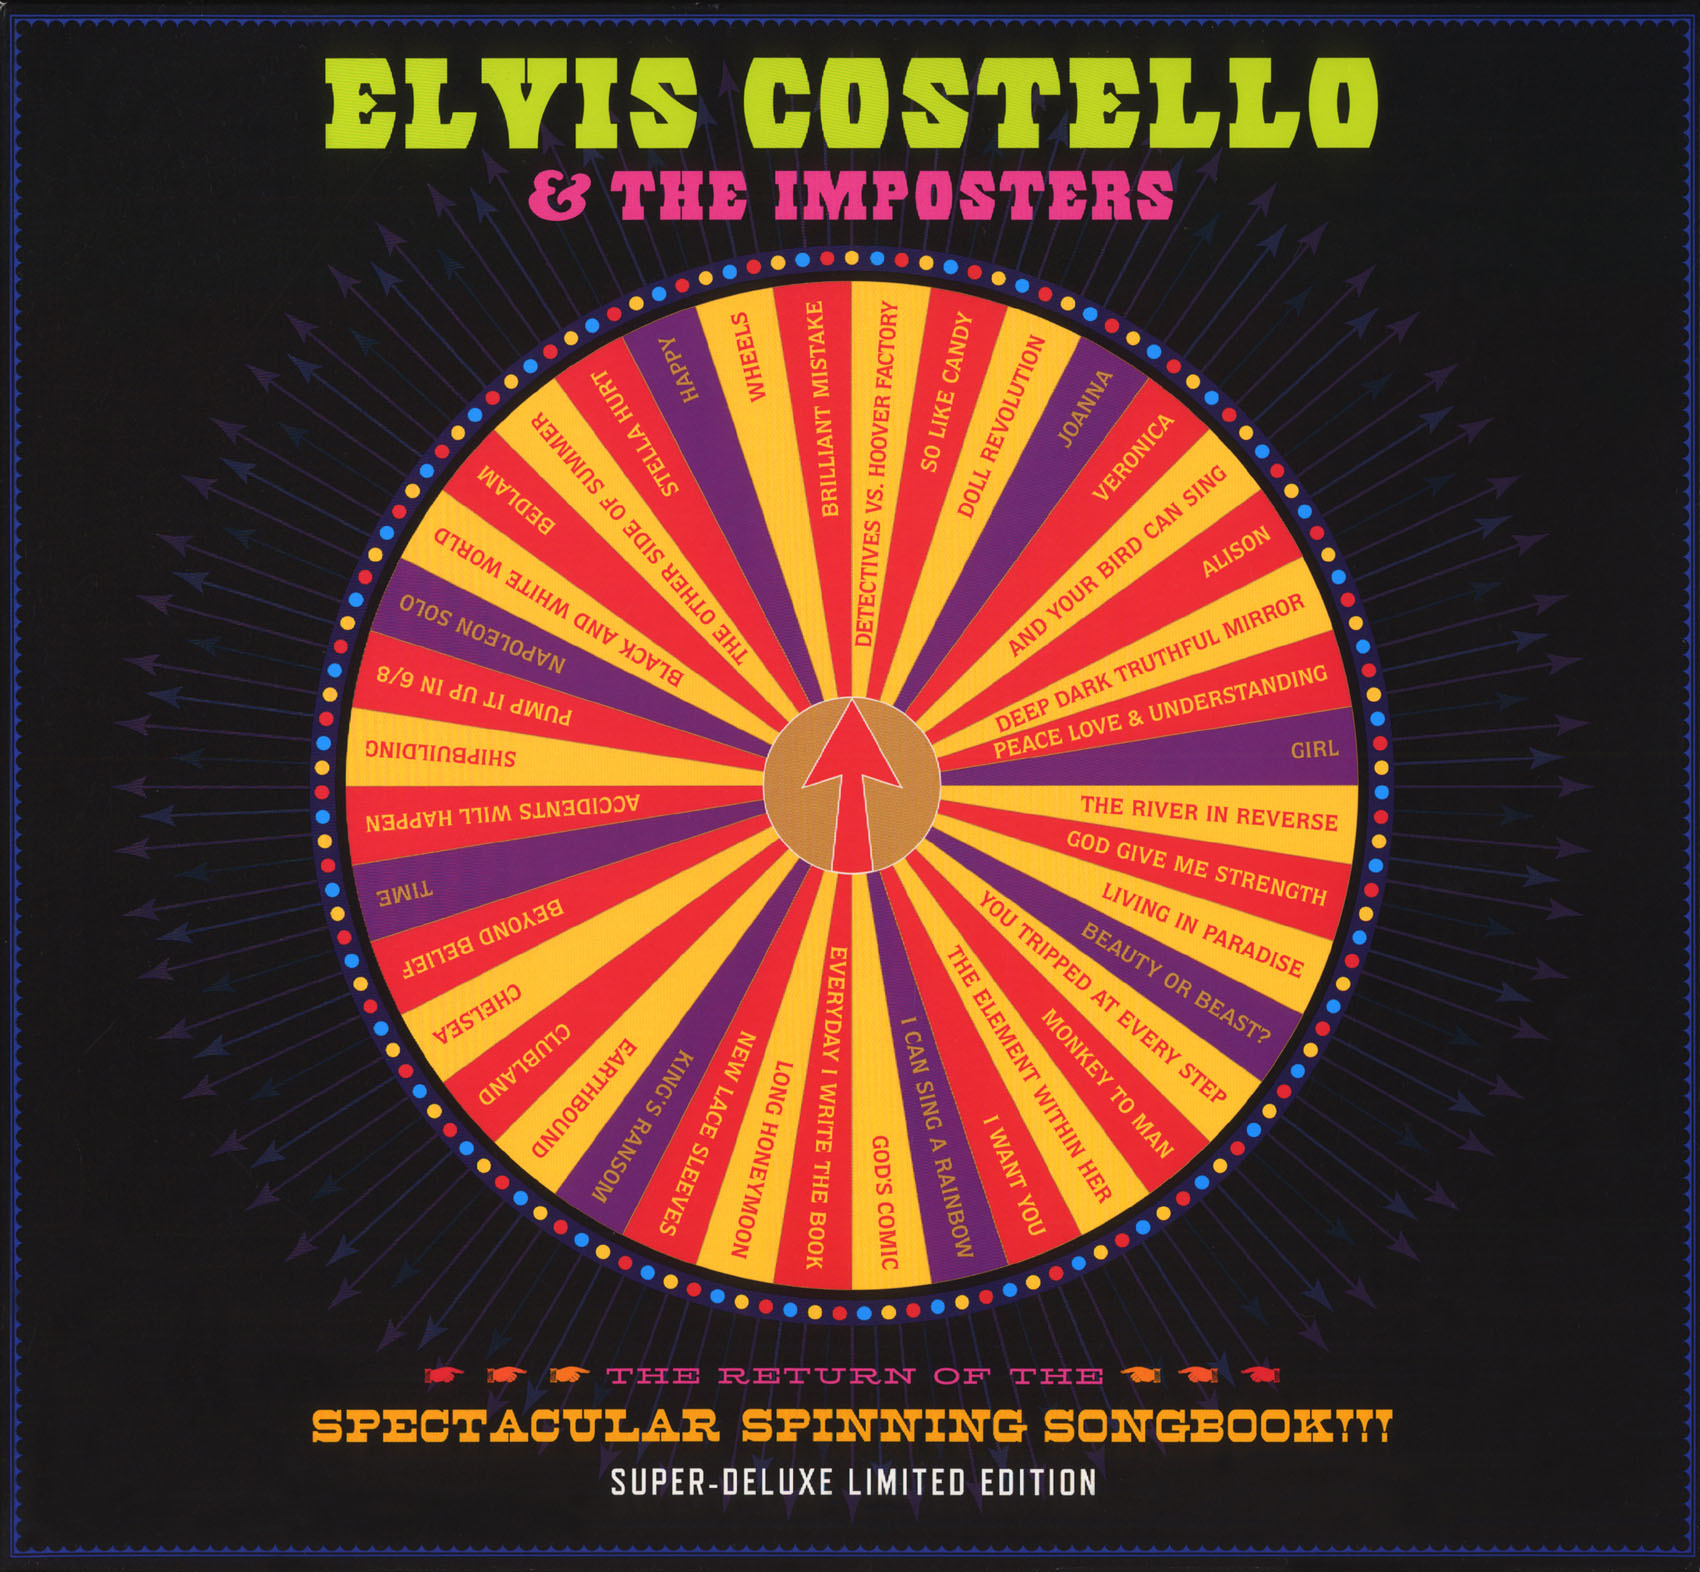 Elvis Costello & the Imposters: The Revolver Tour - The Return of the Spectacular Spinning Songbook!!